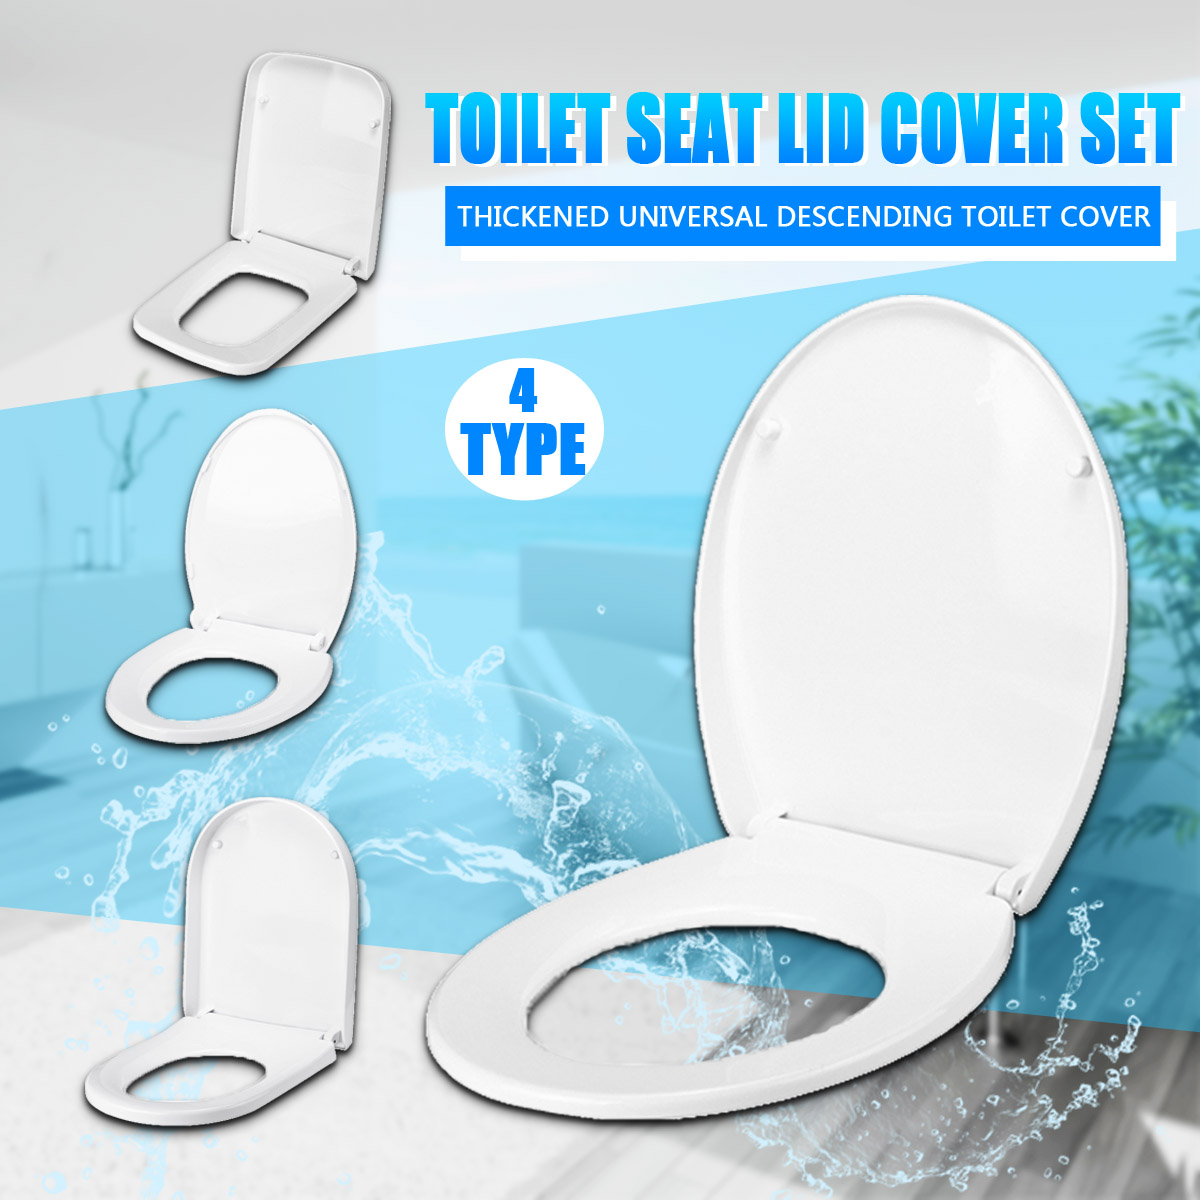 Xueqin PP Universal Slow-Close Toilet Seat Lid Cover Set Thicken Replacement Antibacterial Square Round O/V Type Toilet SeatsXueqin PP Universal Slow-Close Toilet Seat Lid Cover Set Thicken Replacement Antibacterial Square Round O/V Type Toilet Seats